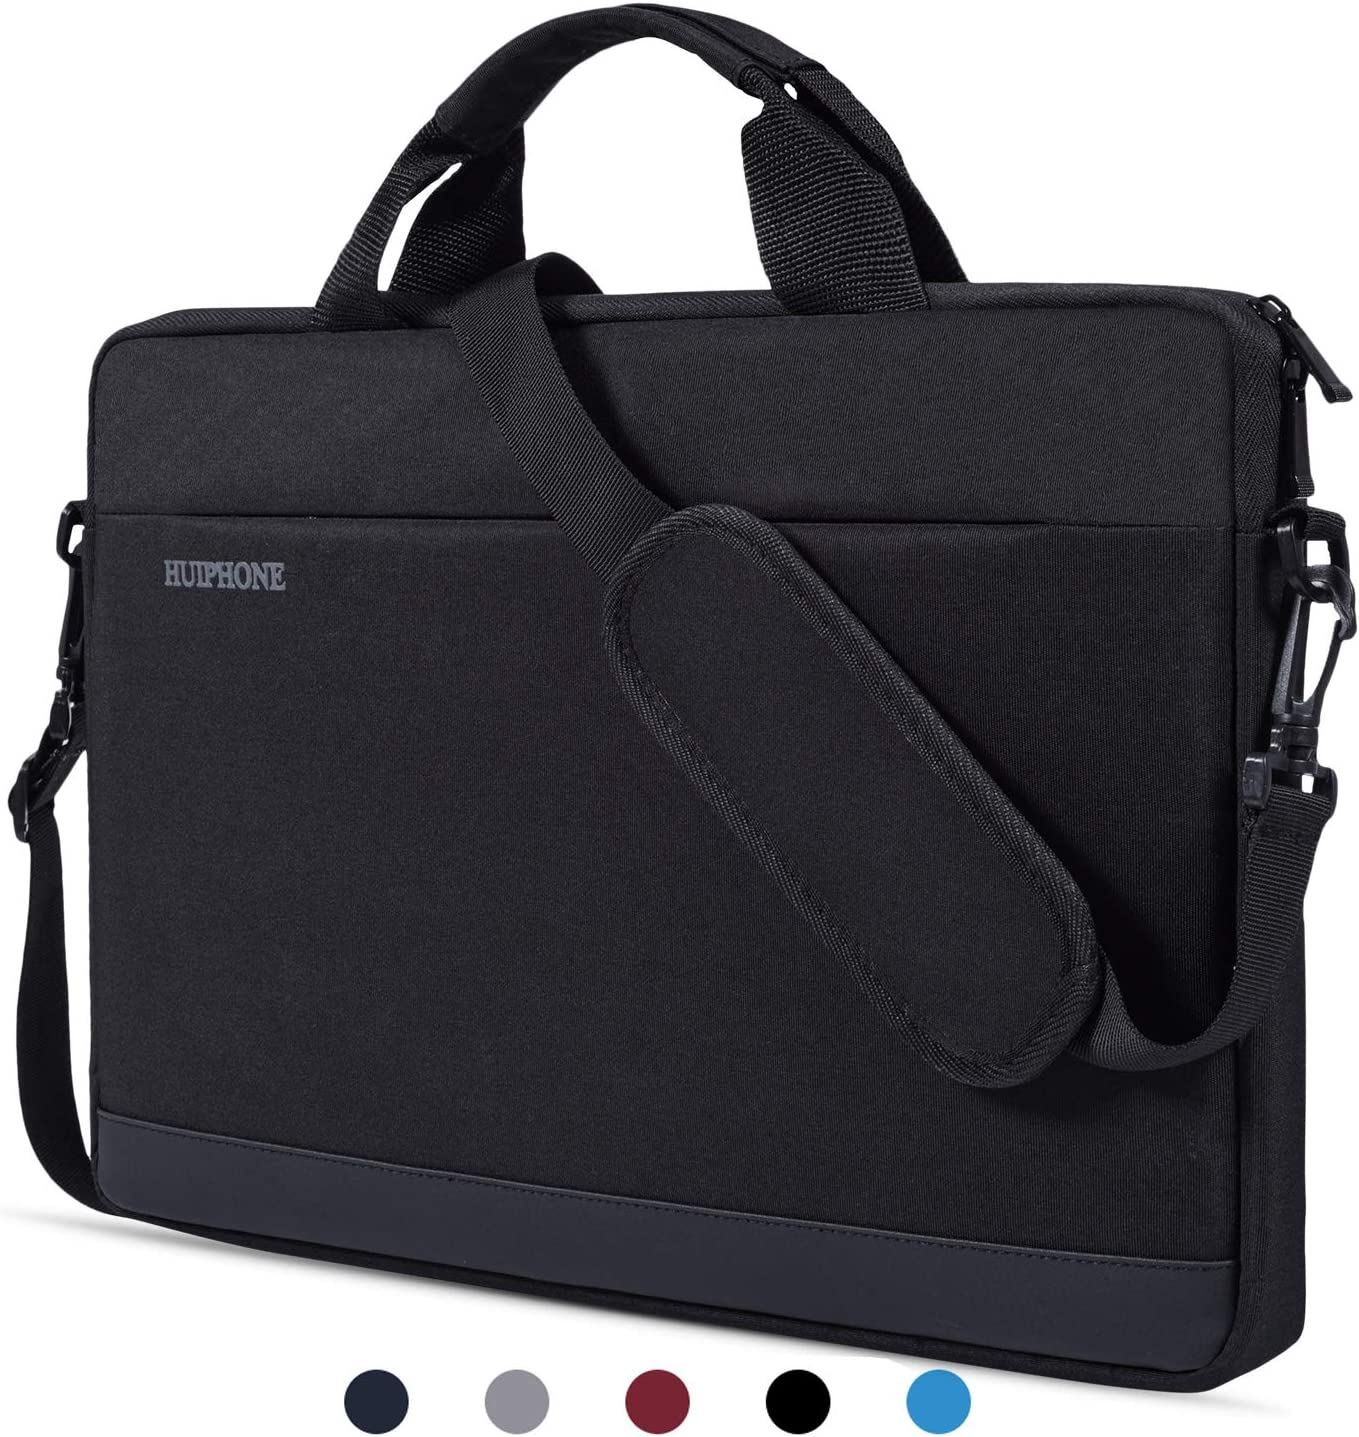 "15.6 Inch Water Resistant Laptop Shoulder Bag Case Sleeve for Acer Aspire E 15,Acer Chromebook 15,HP 15.6"" Laptop,ASUS VivoBook F510UA 15.6,MSI LG Toshiba ASUS Lenovo Acer 15.6 inch Notebook Bag,Black"